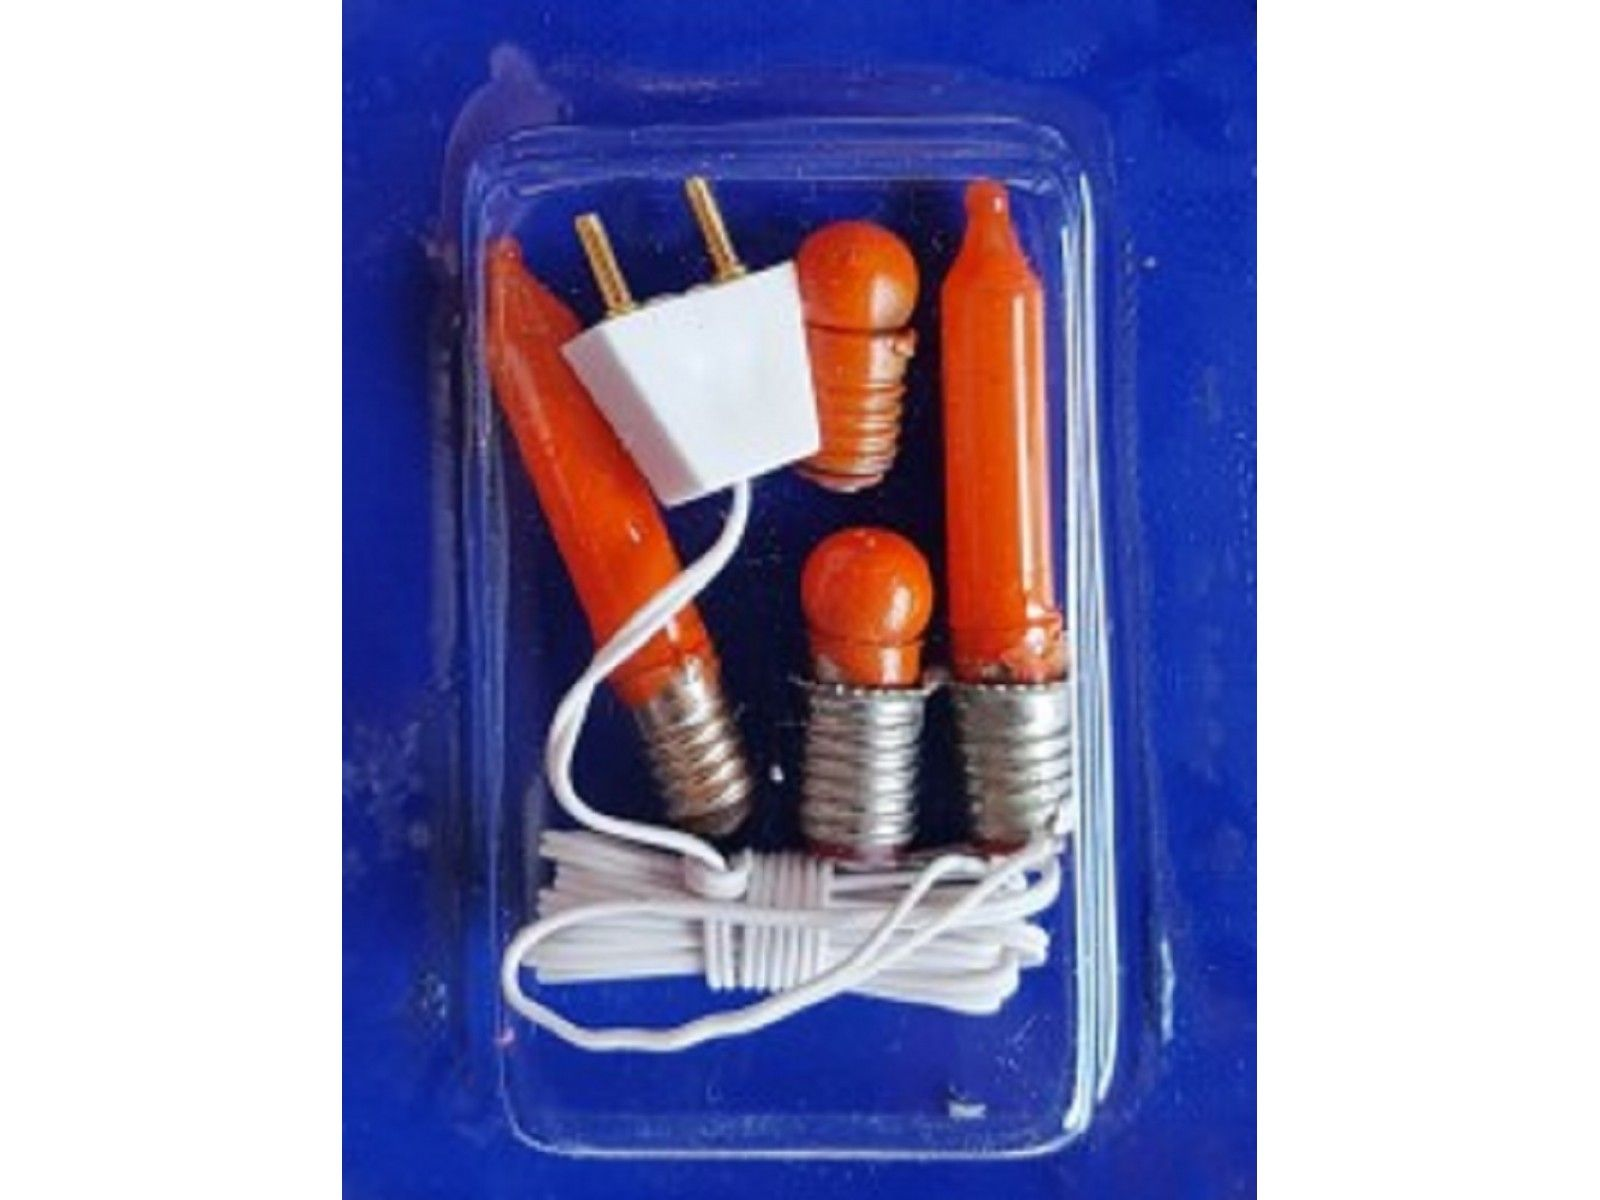 Dolls House 12v Flicker Flame Bulb Unit For Miniature Fires Doll House Miniatures Bulb